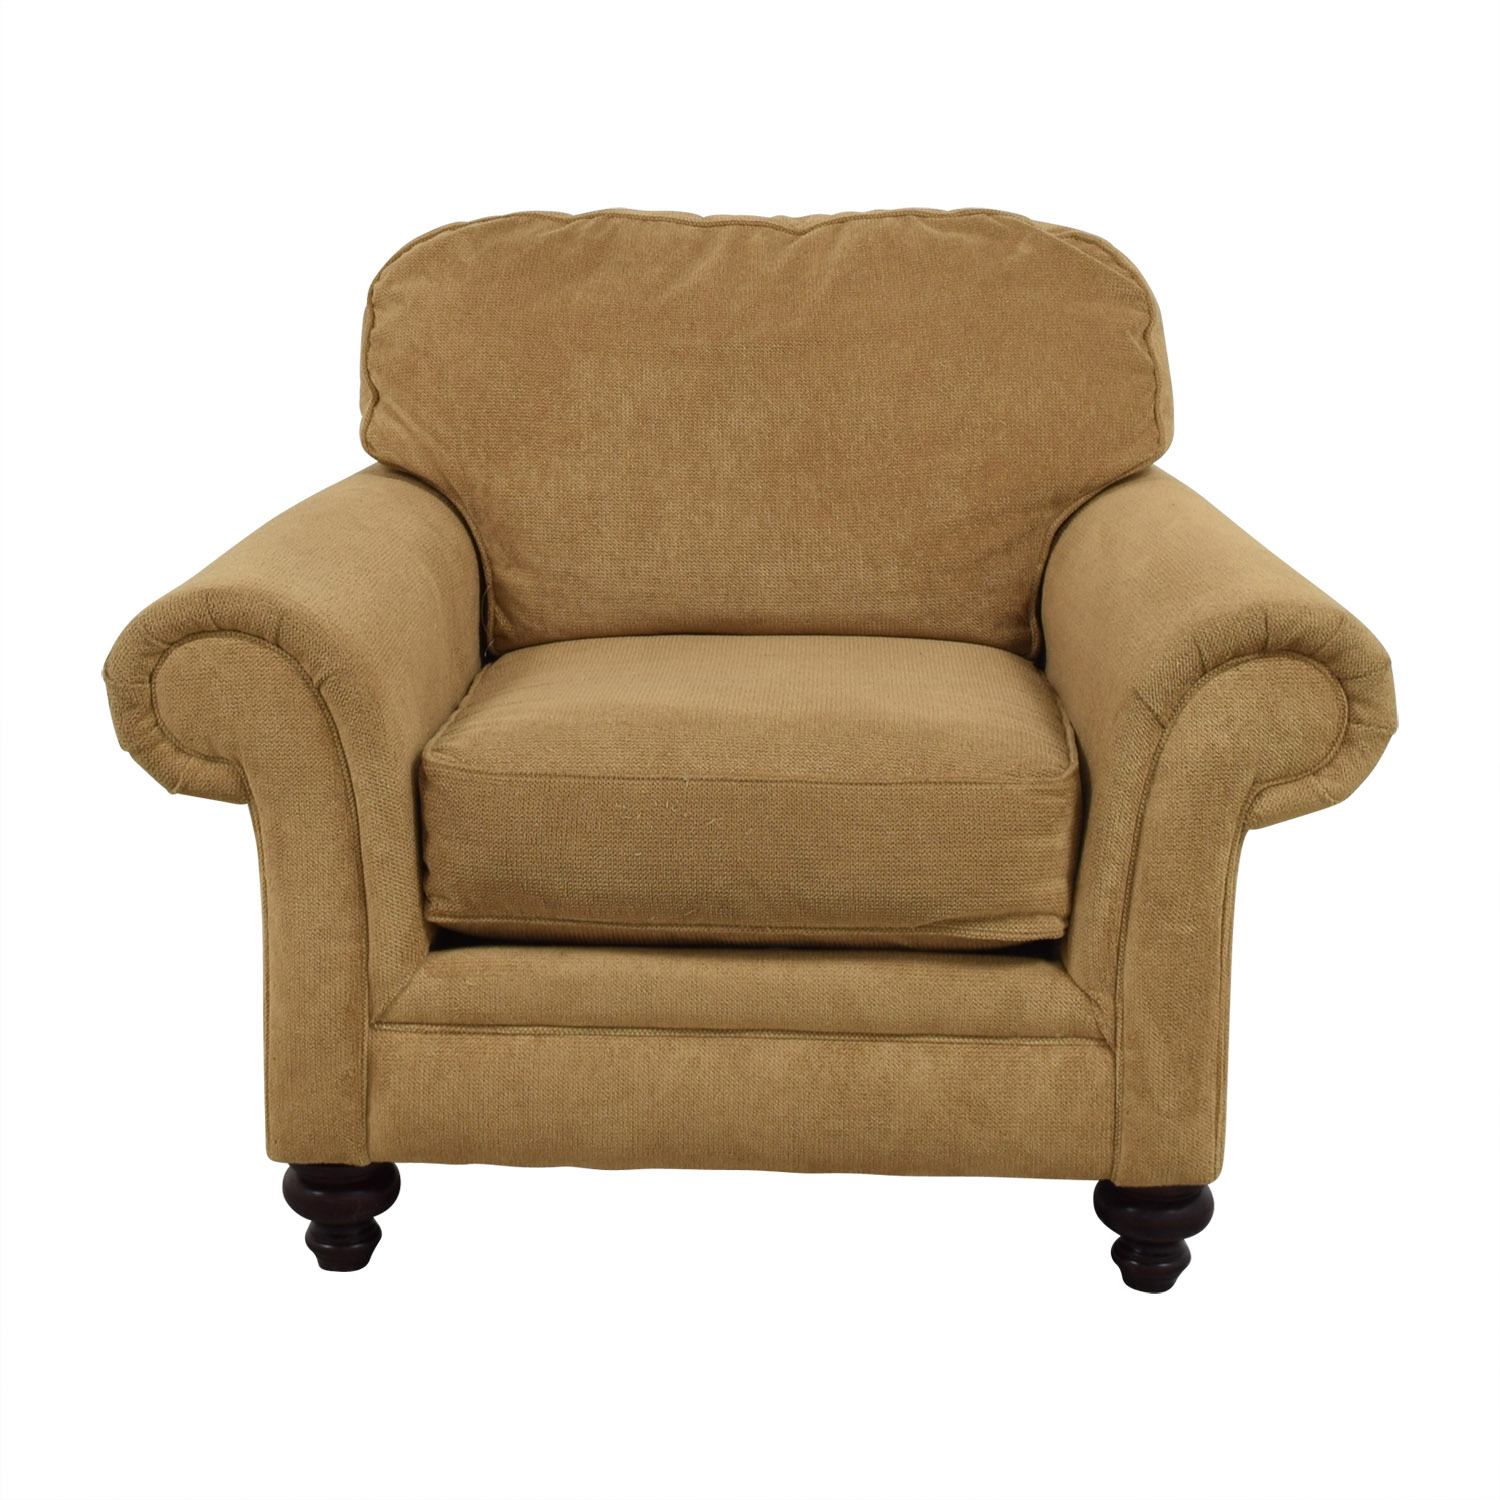 Shop Broyhill Mustard Yellow Accent Chair With Curved Arms Broyhill Chairs  ...